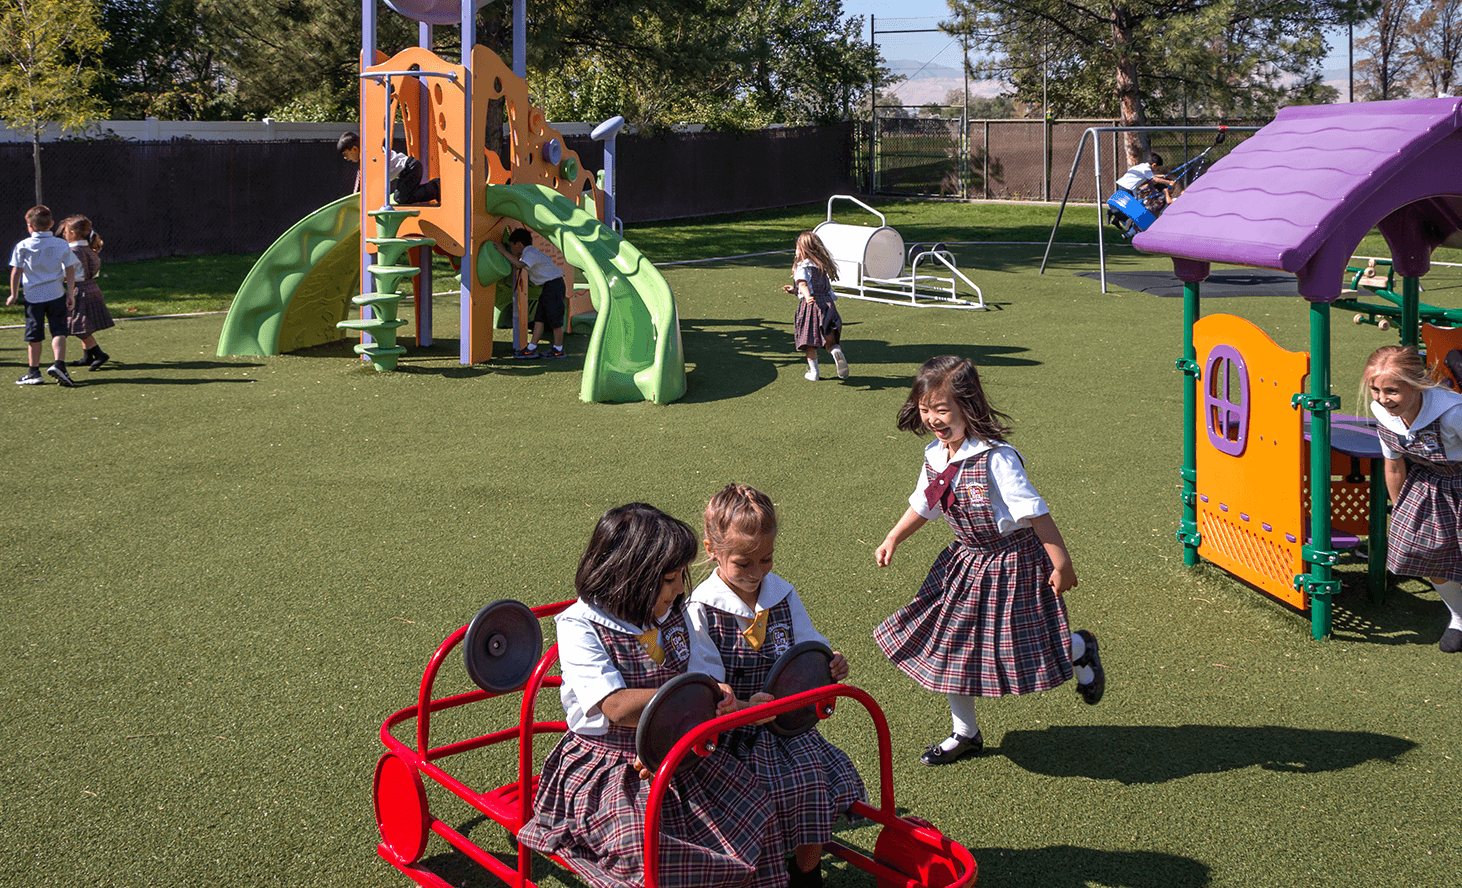 Preschool Playground Slide | Challenger School - West Jordan | Private School In West Jordan, Utah